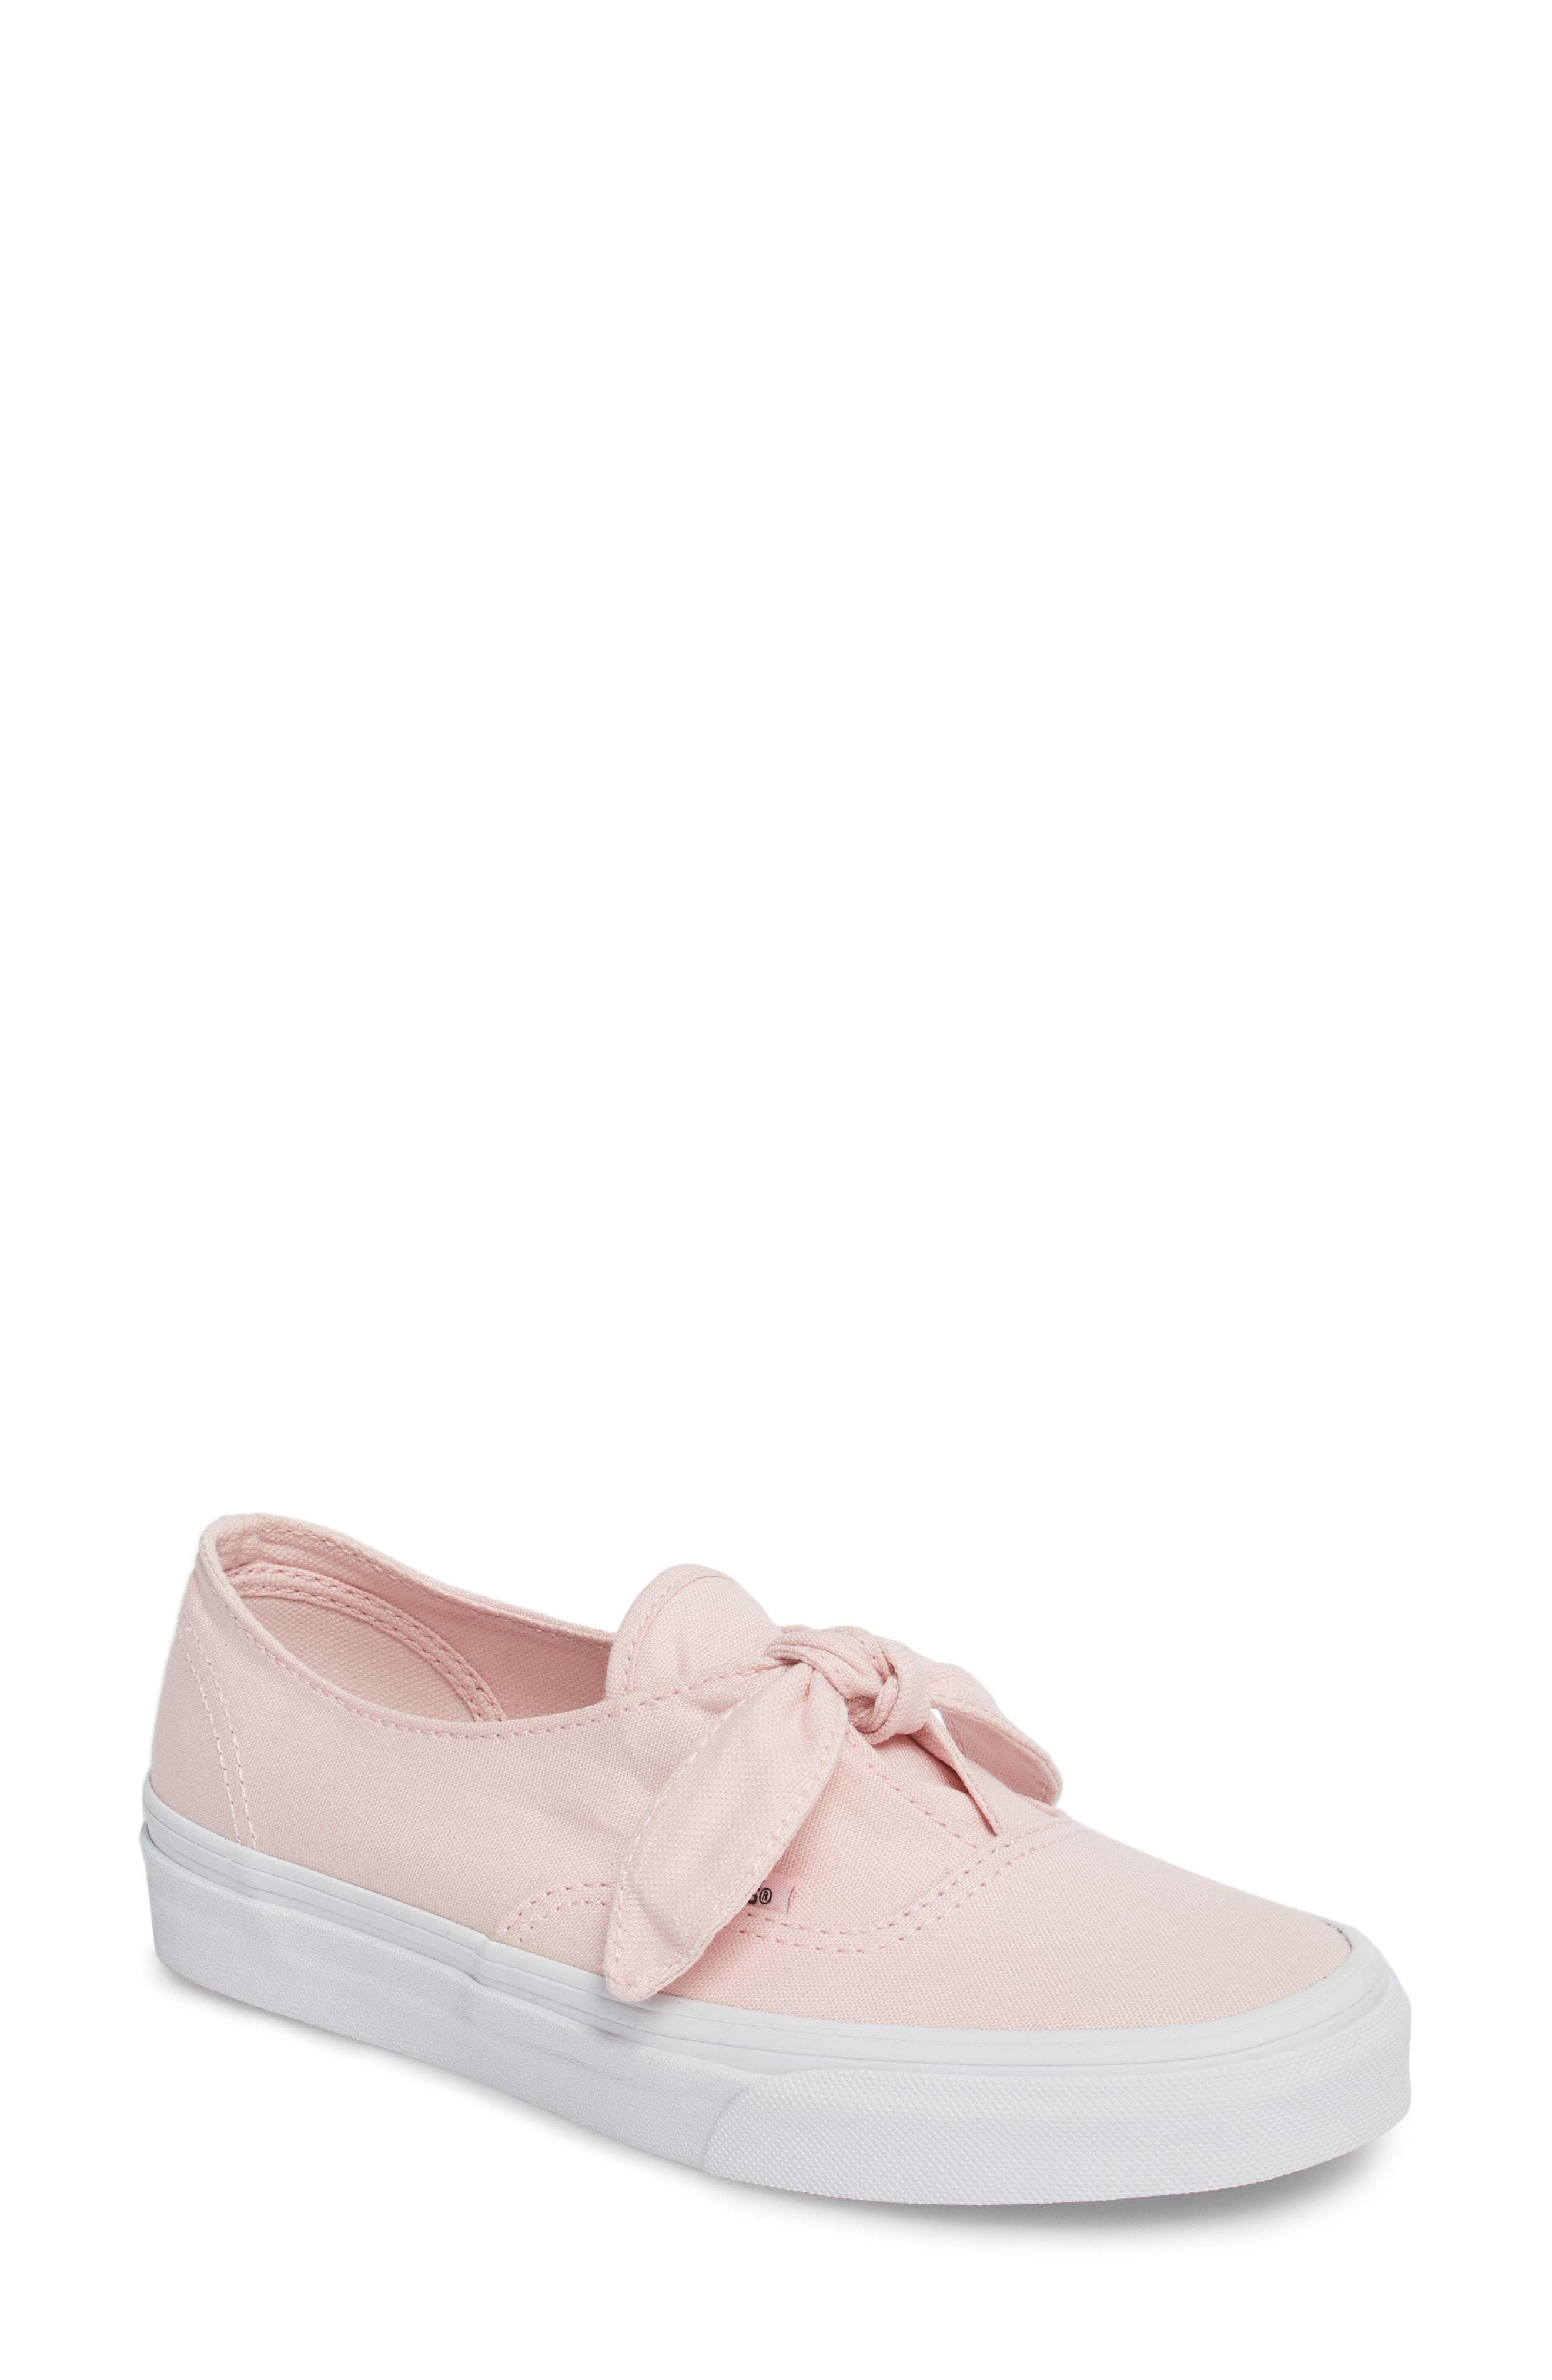 332f0151e3 Vans Ua Authentic Knotted Slip-On Sneaker In Chalk Pink  True White ...